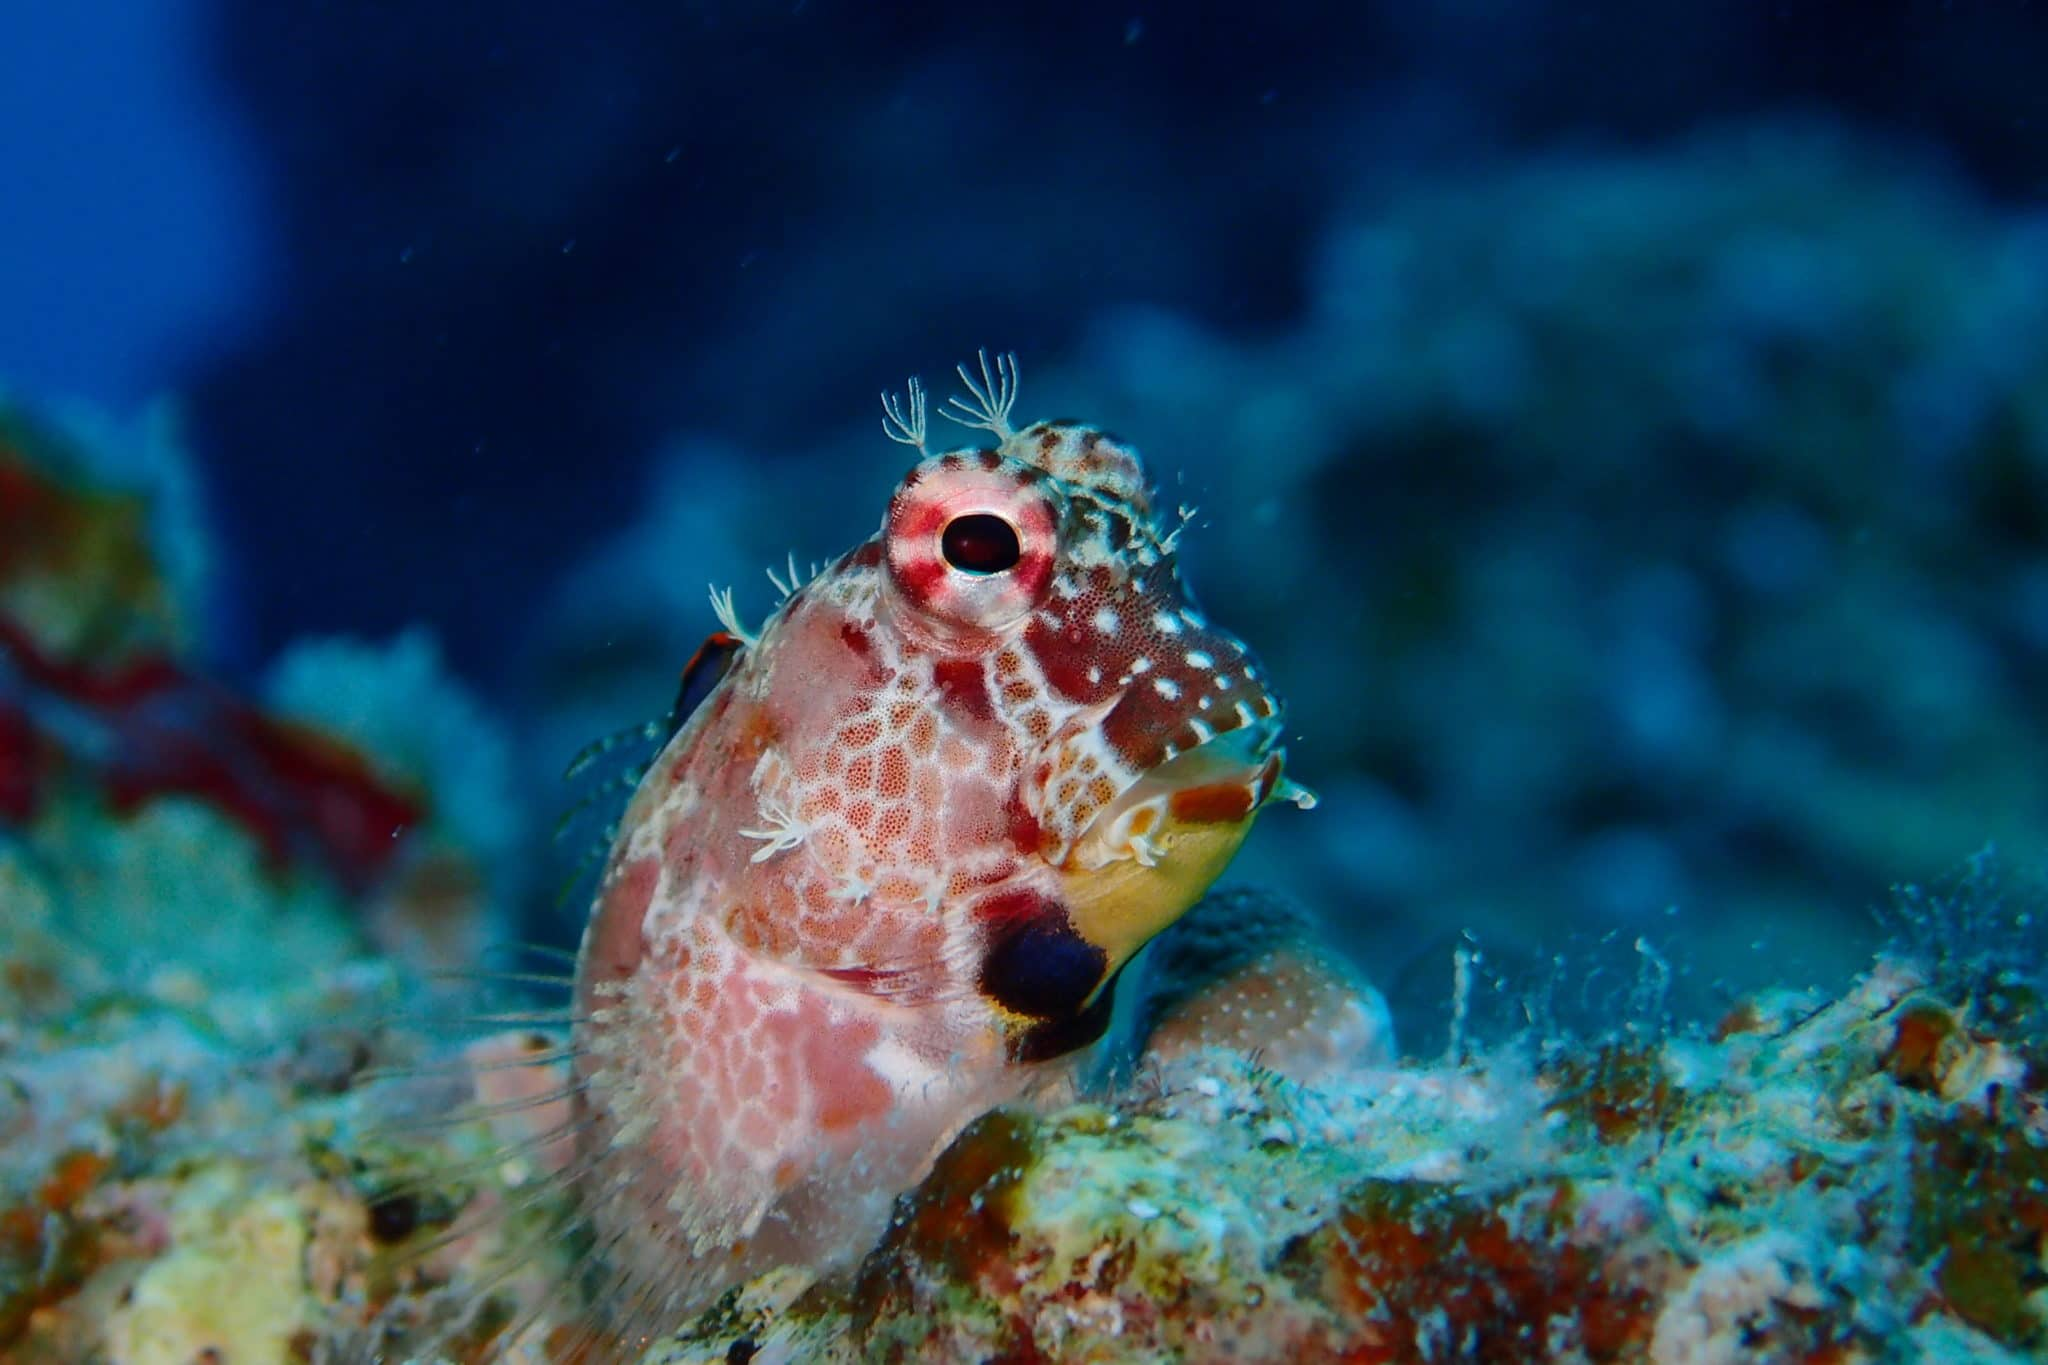 Blenny Scuba diving Taketomi Ishigaki Okinawa Japan